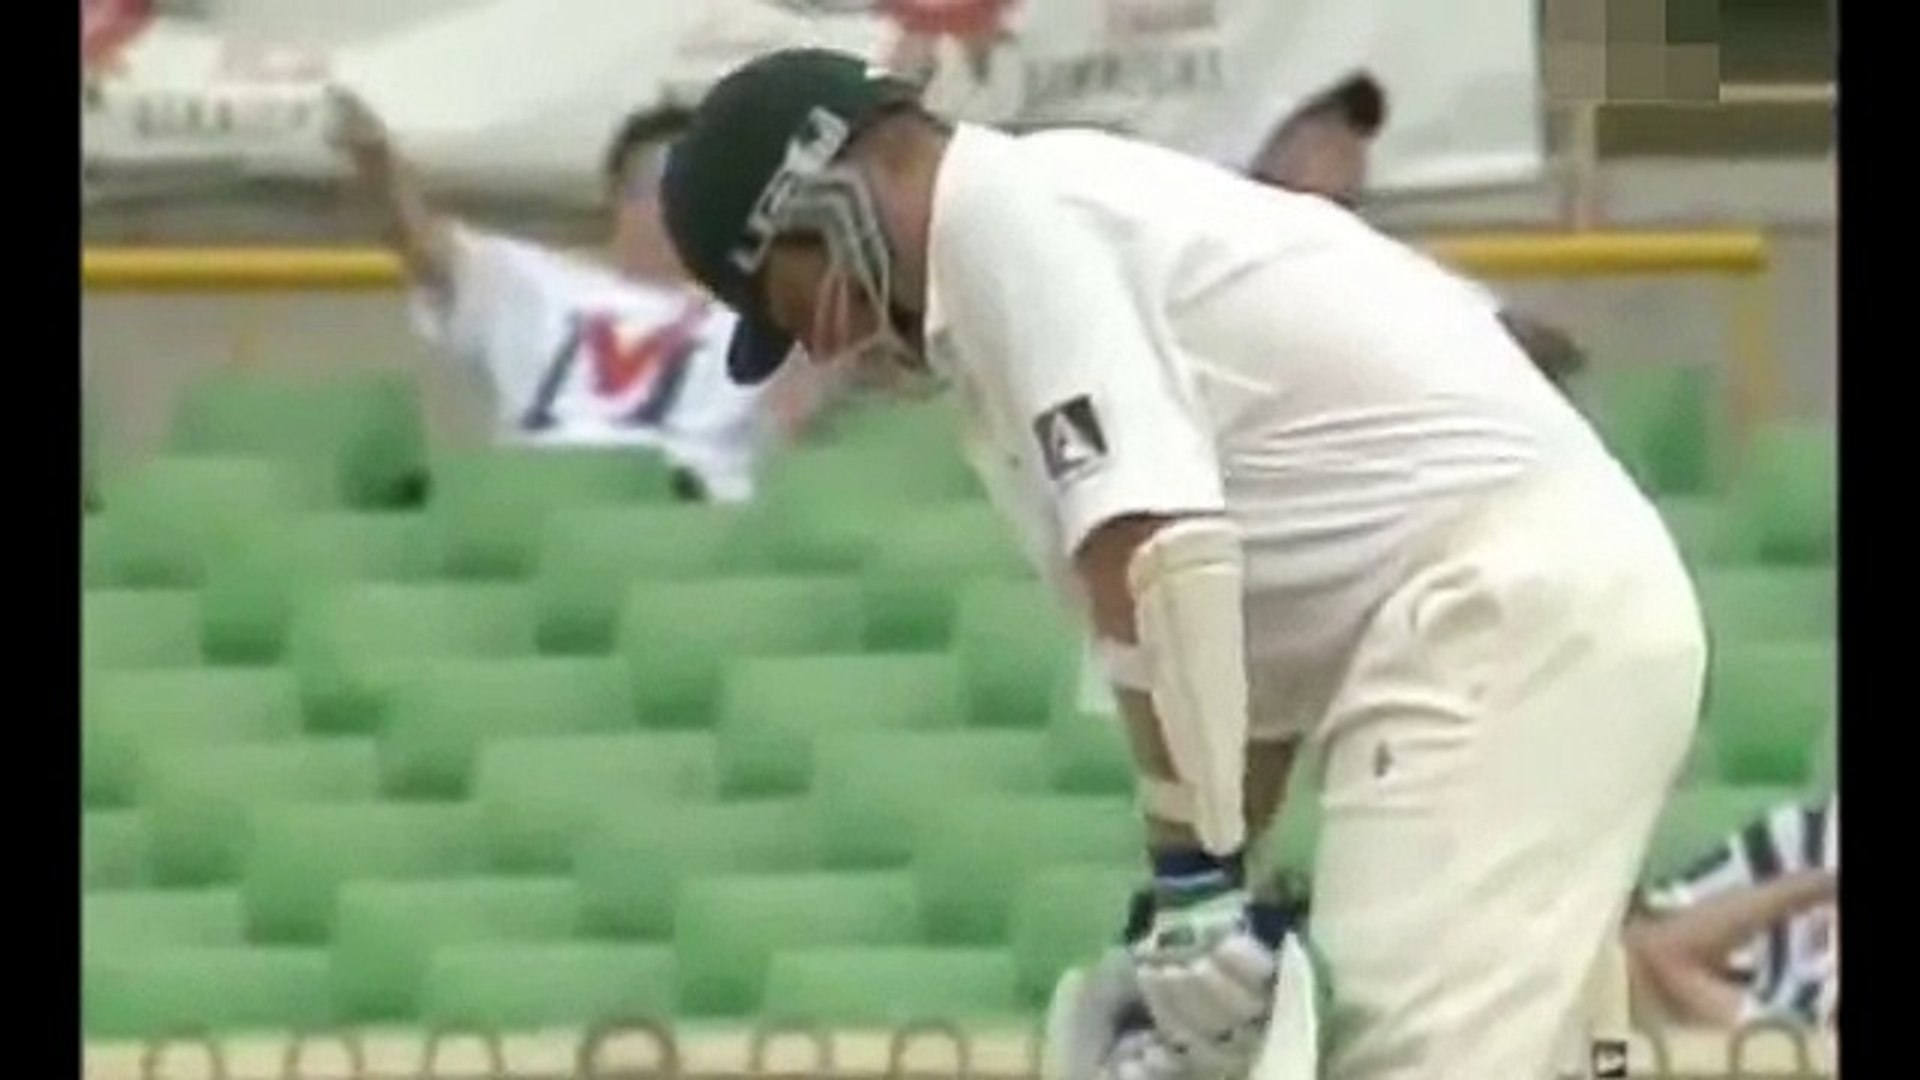 Worst over in Cricket N N N N N N N N N 9 No Balls in One Over Worst Bowling - YouTube